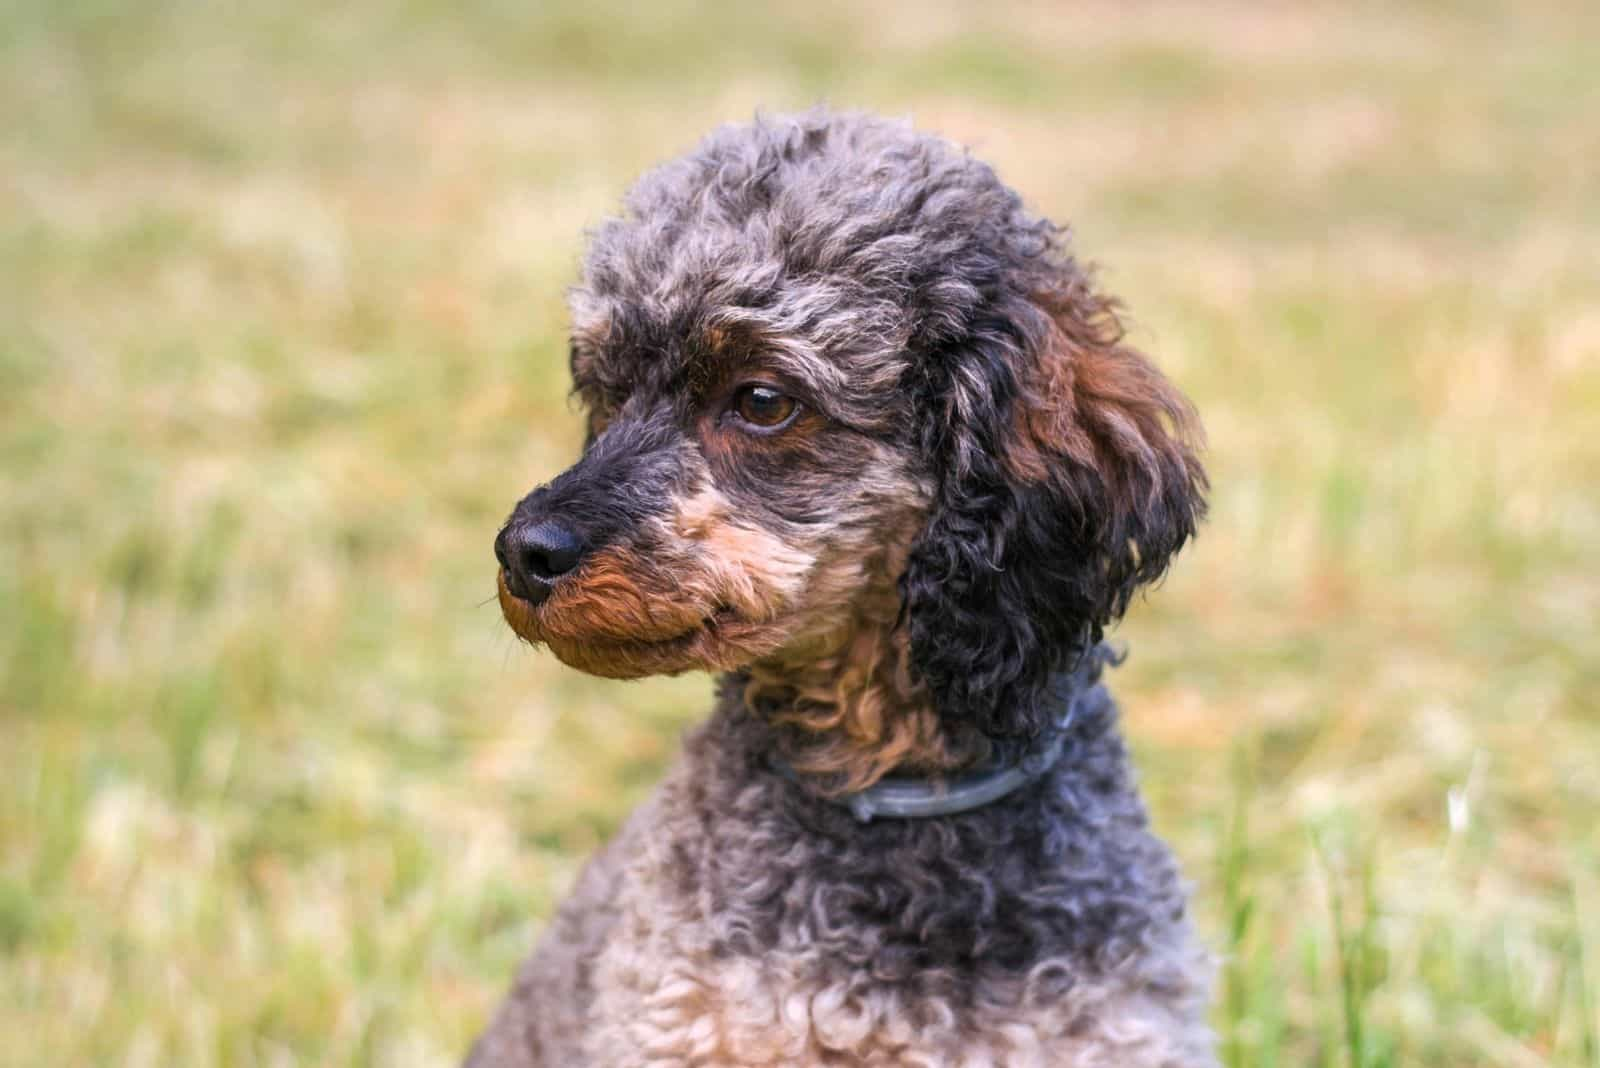 phantom poodle puppy standing outdoors